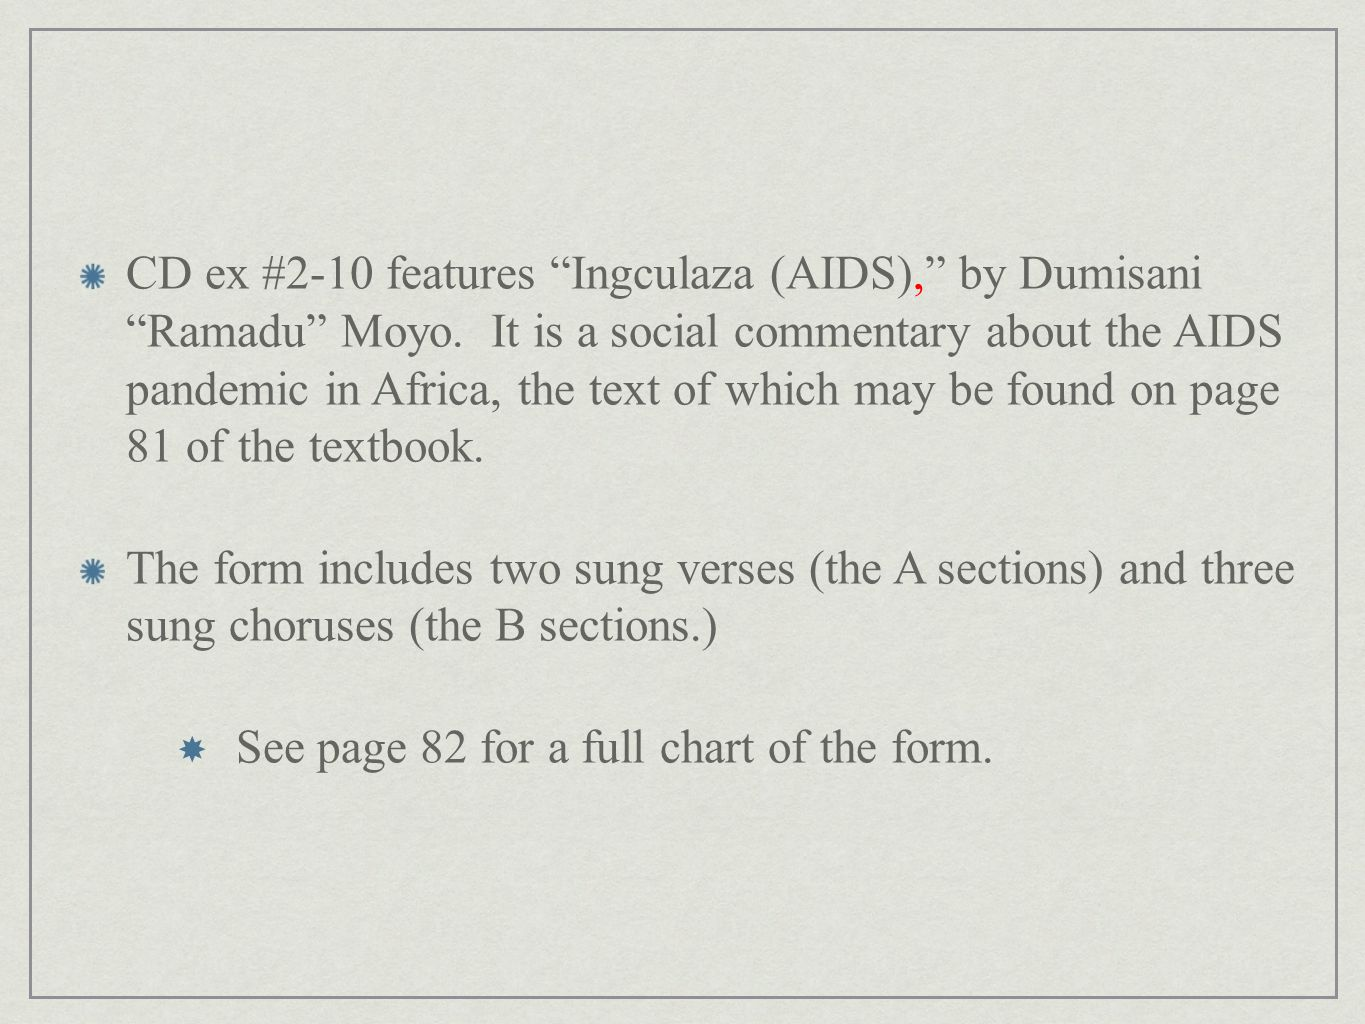 CD ex #2-10 features Ingculaza (AIDS), by Dumisani Ramadu Moyo